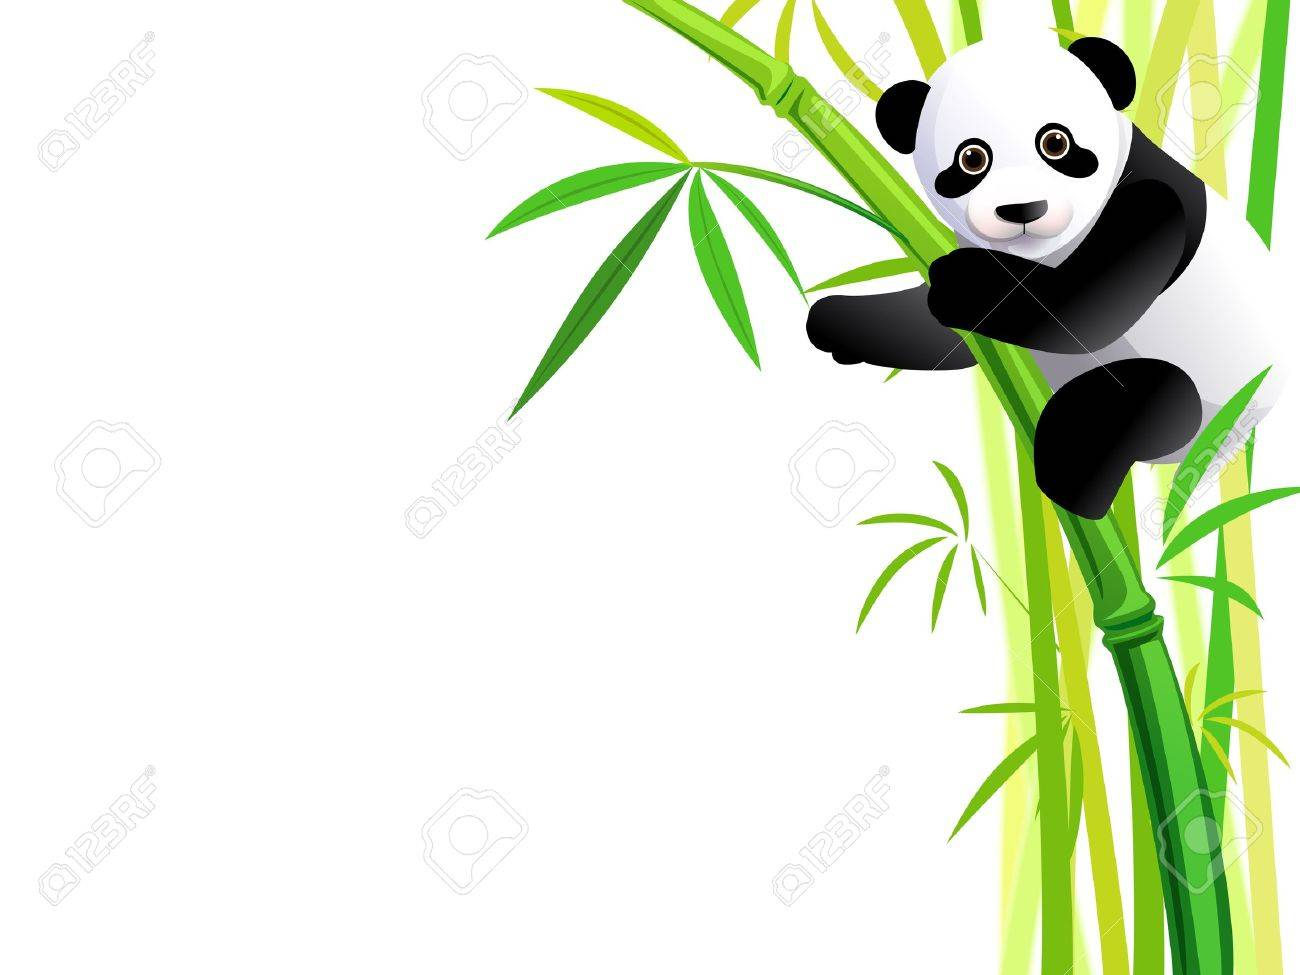 young panda hang on green bamboo forest - 17993048